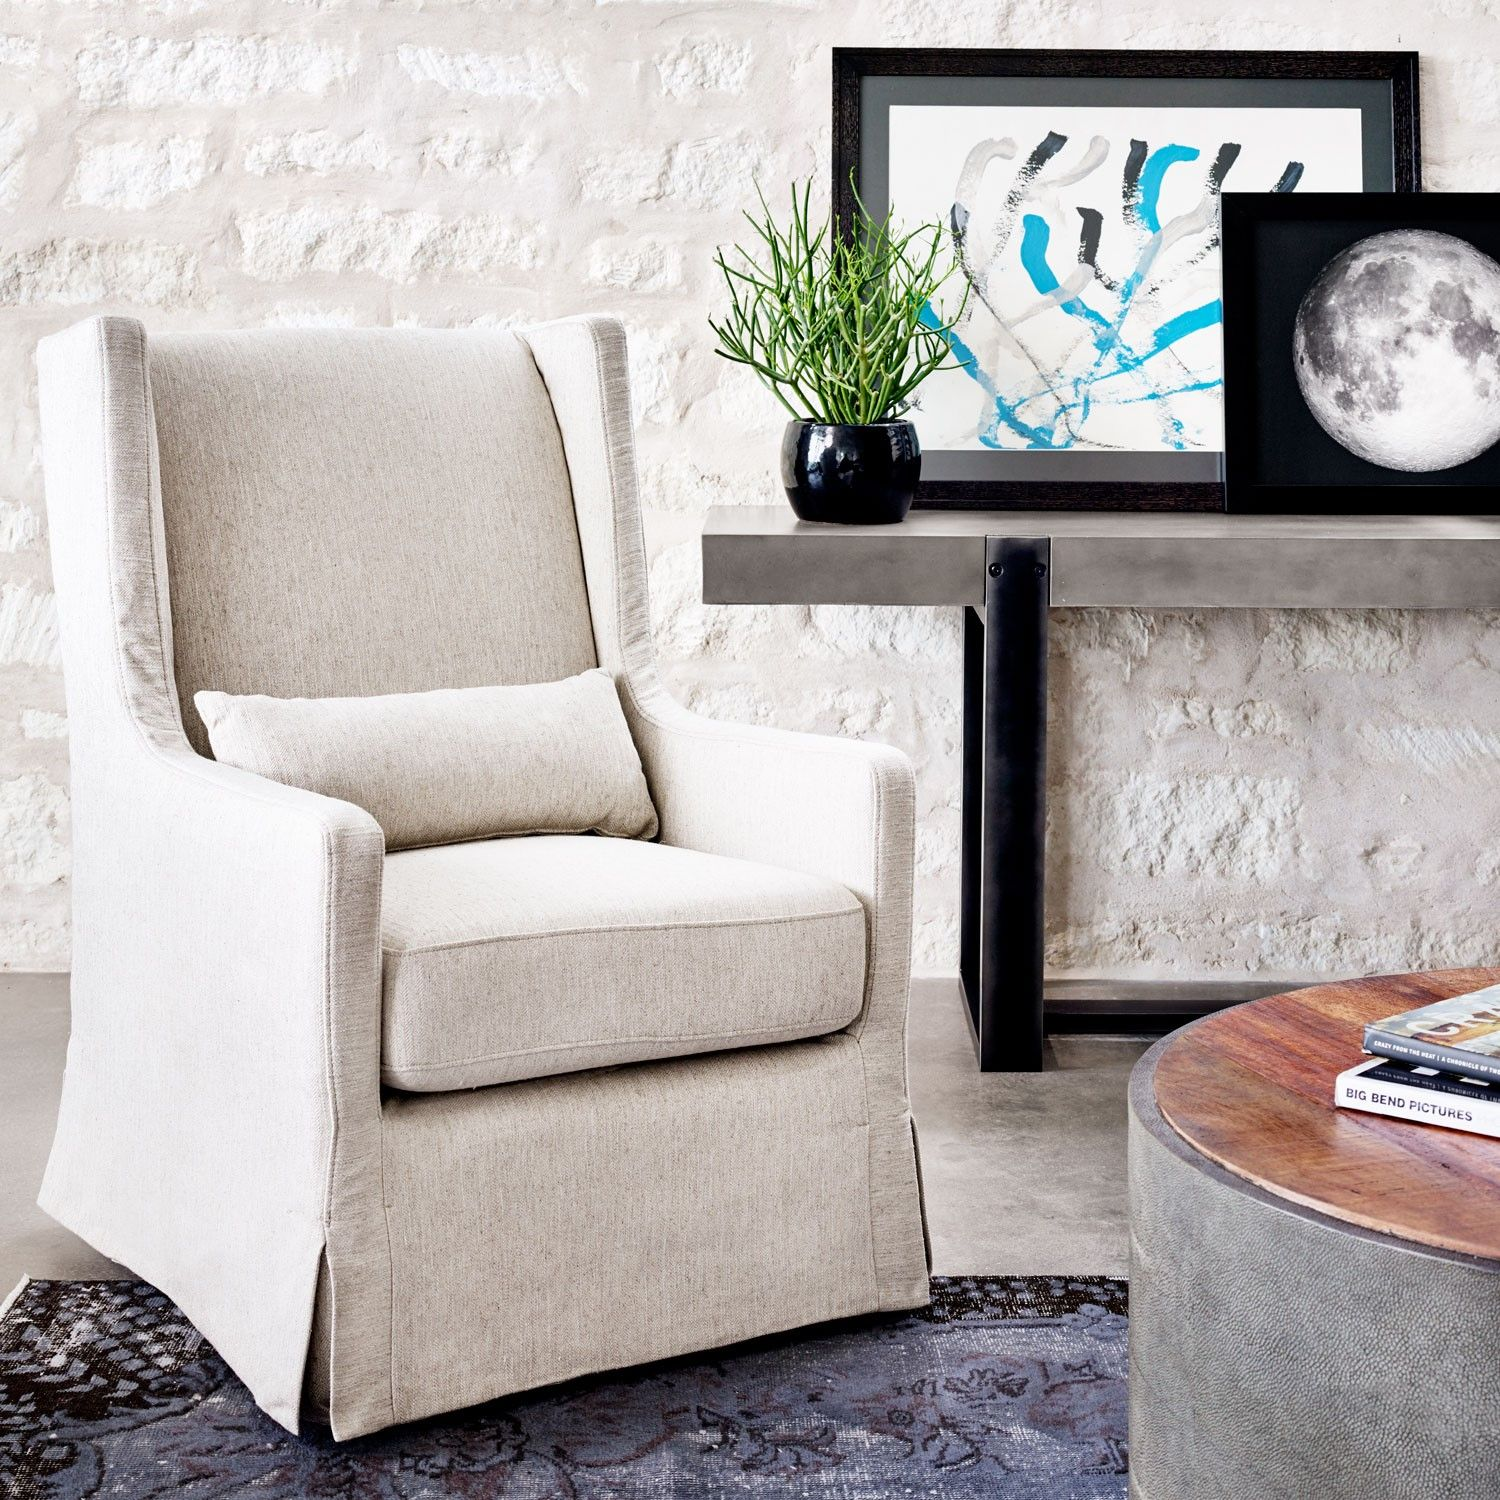 Alistair Strasbourg Swivel Chair Wing Chair Industrial Chic Living Room Upholstered Swivel Chairs [ 1500 x 1500 Pixel ]